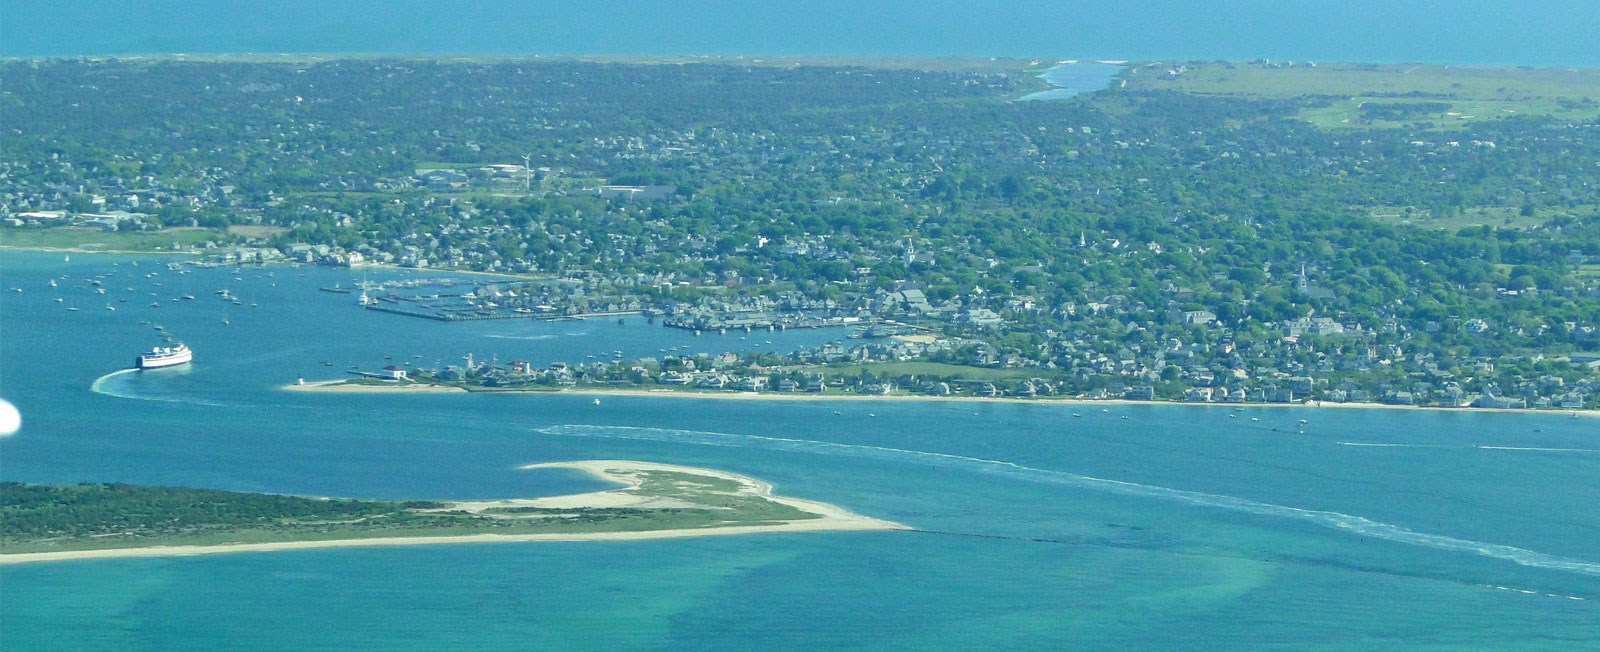 The annual Figawi race from Hyannis to Nantucket is just around the corner and there's still time to find a place on the island to be there for all of the action. We found several vacation rental homes that would be perfect to enjoy the weekend.